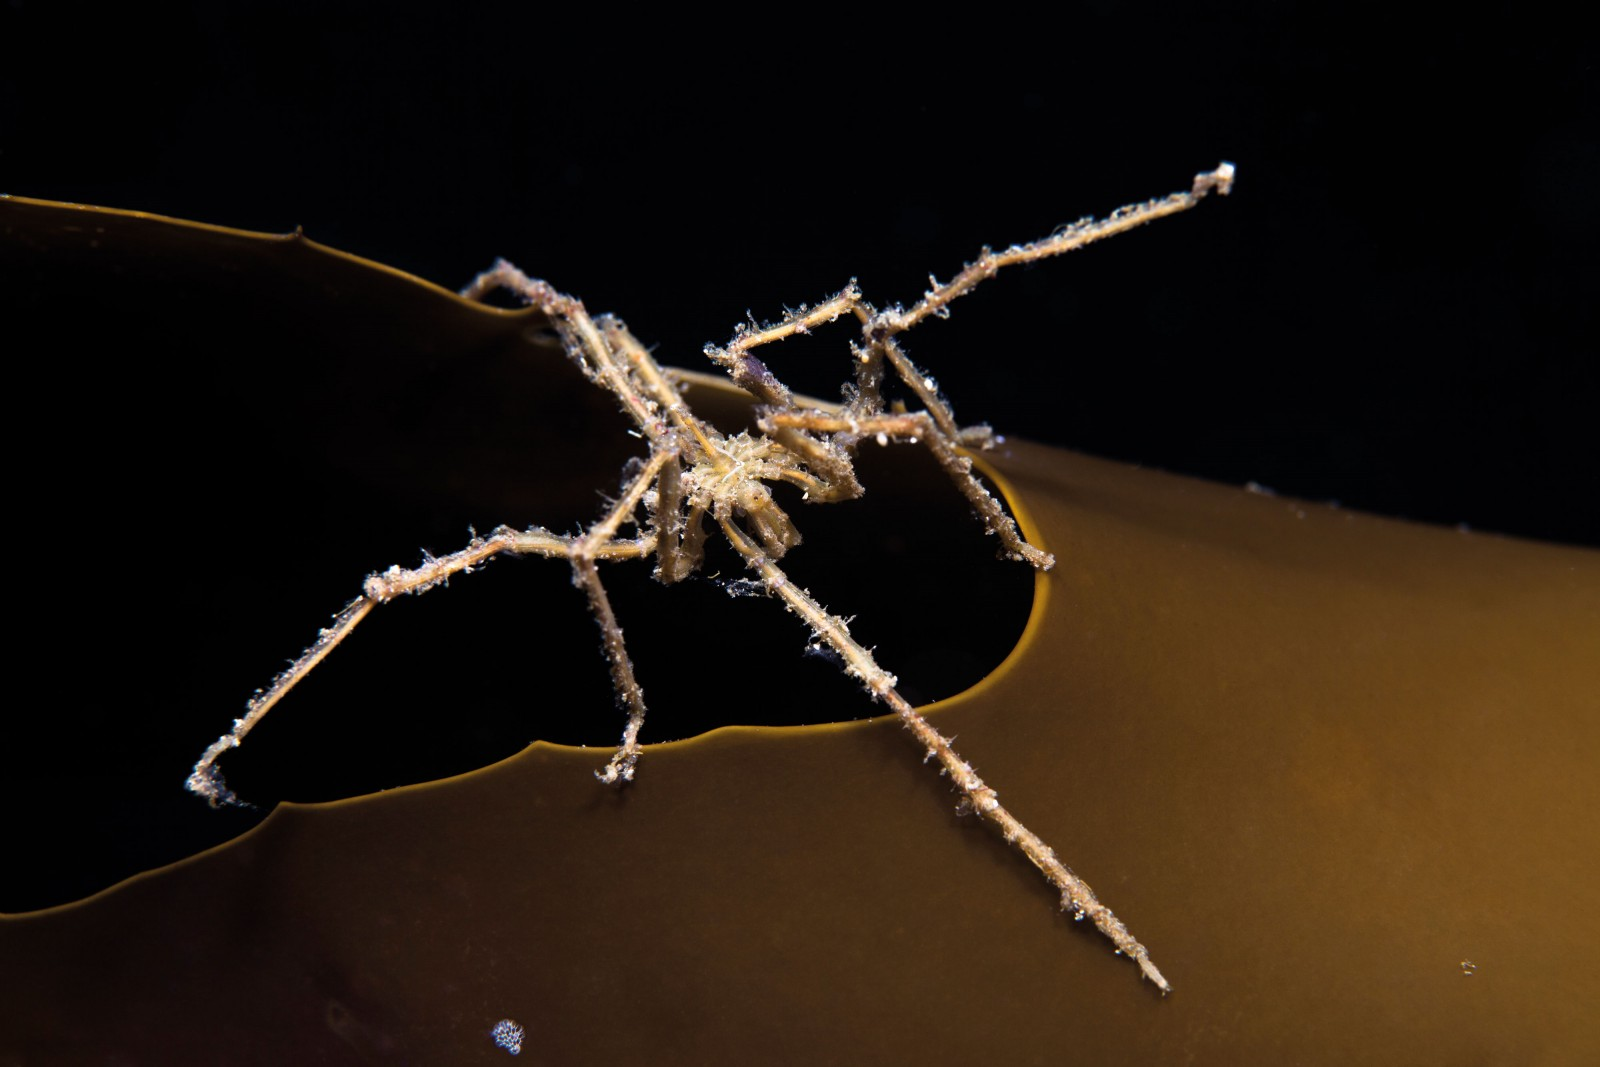 A pycnogonid, or sea spider, clings to the edge of a kelp frond in Dusky Sound. These ancient creatures, which range in size from a millimetre to almost a metre, may be a sister group to terrestrial insects, spiders and crustaceans. Some have mosquito-like feeding habits, inserting their proboscis into a soft-bodied marine organism such as a sea anemone and sucking out body fluids. This species, about the size of a two-dollar coin, has eight legs, but some pycnogonid species have 10 or 12.